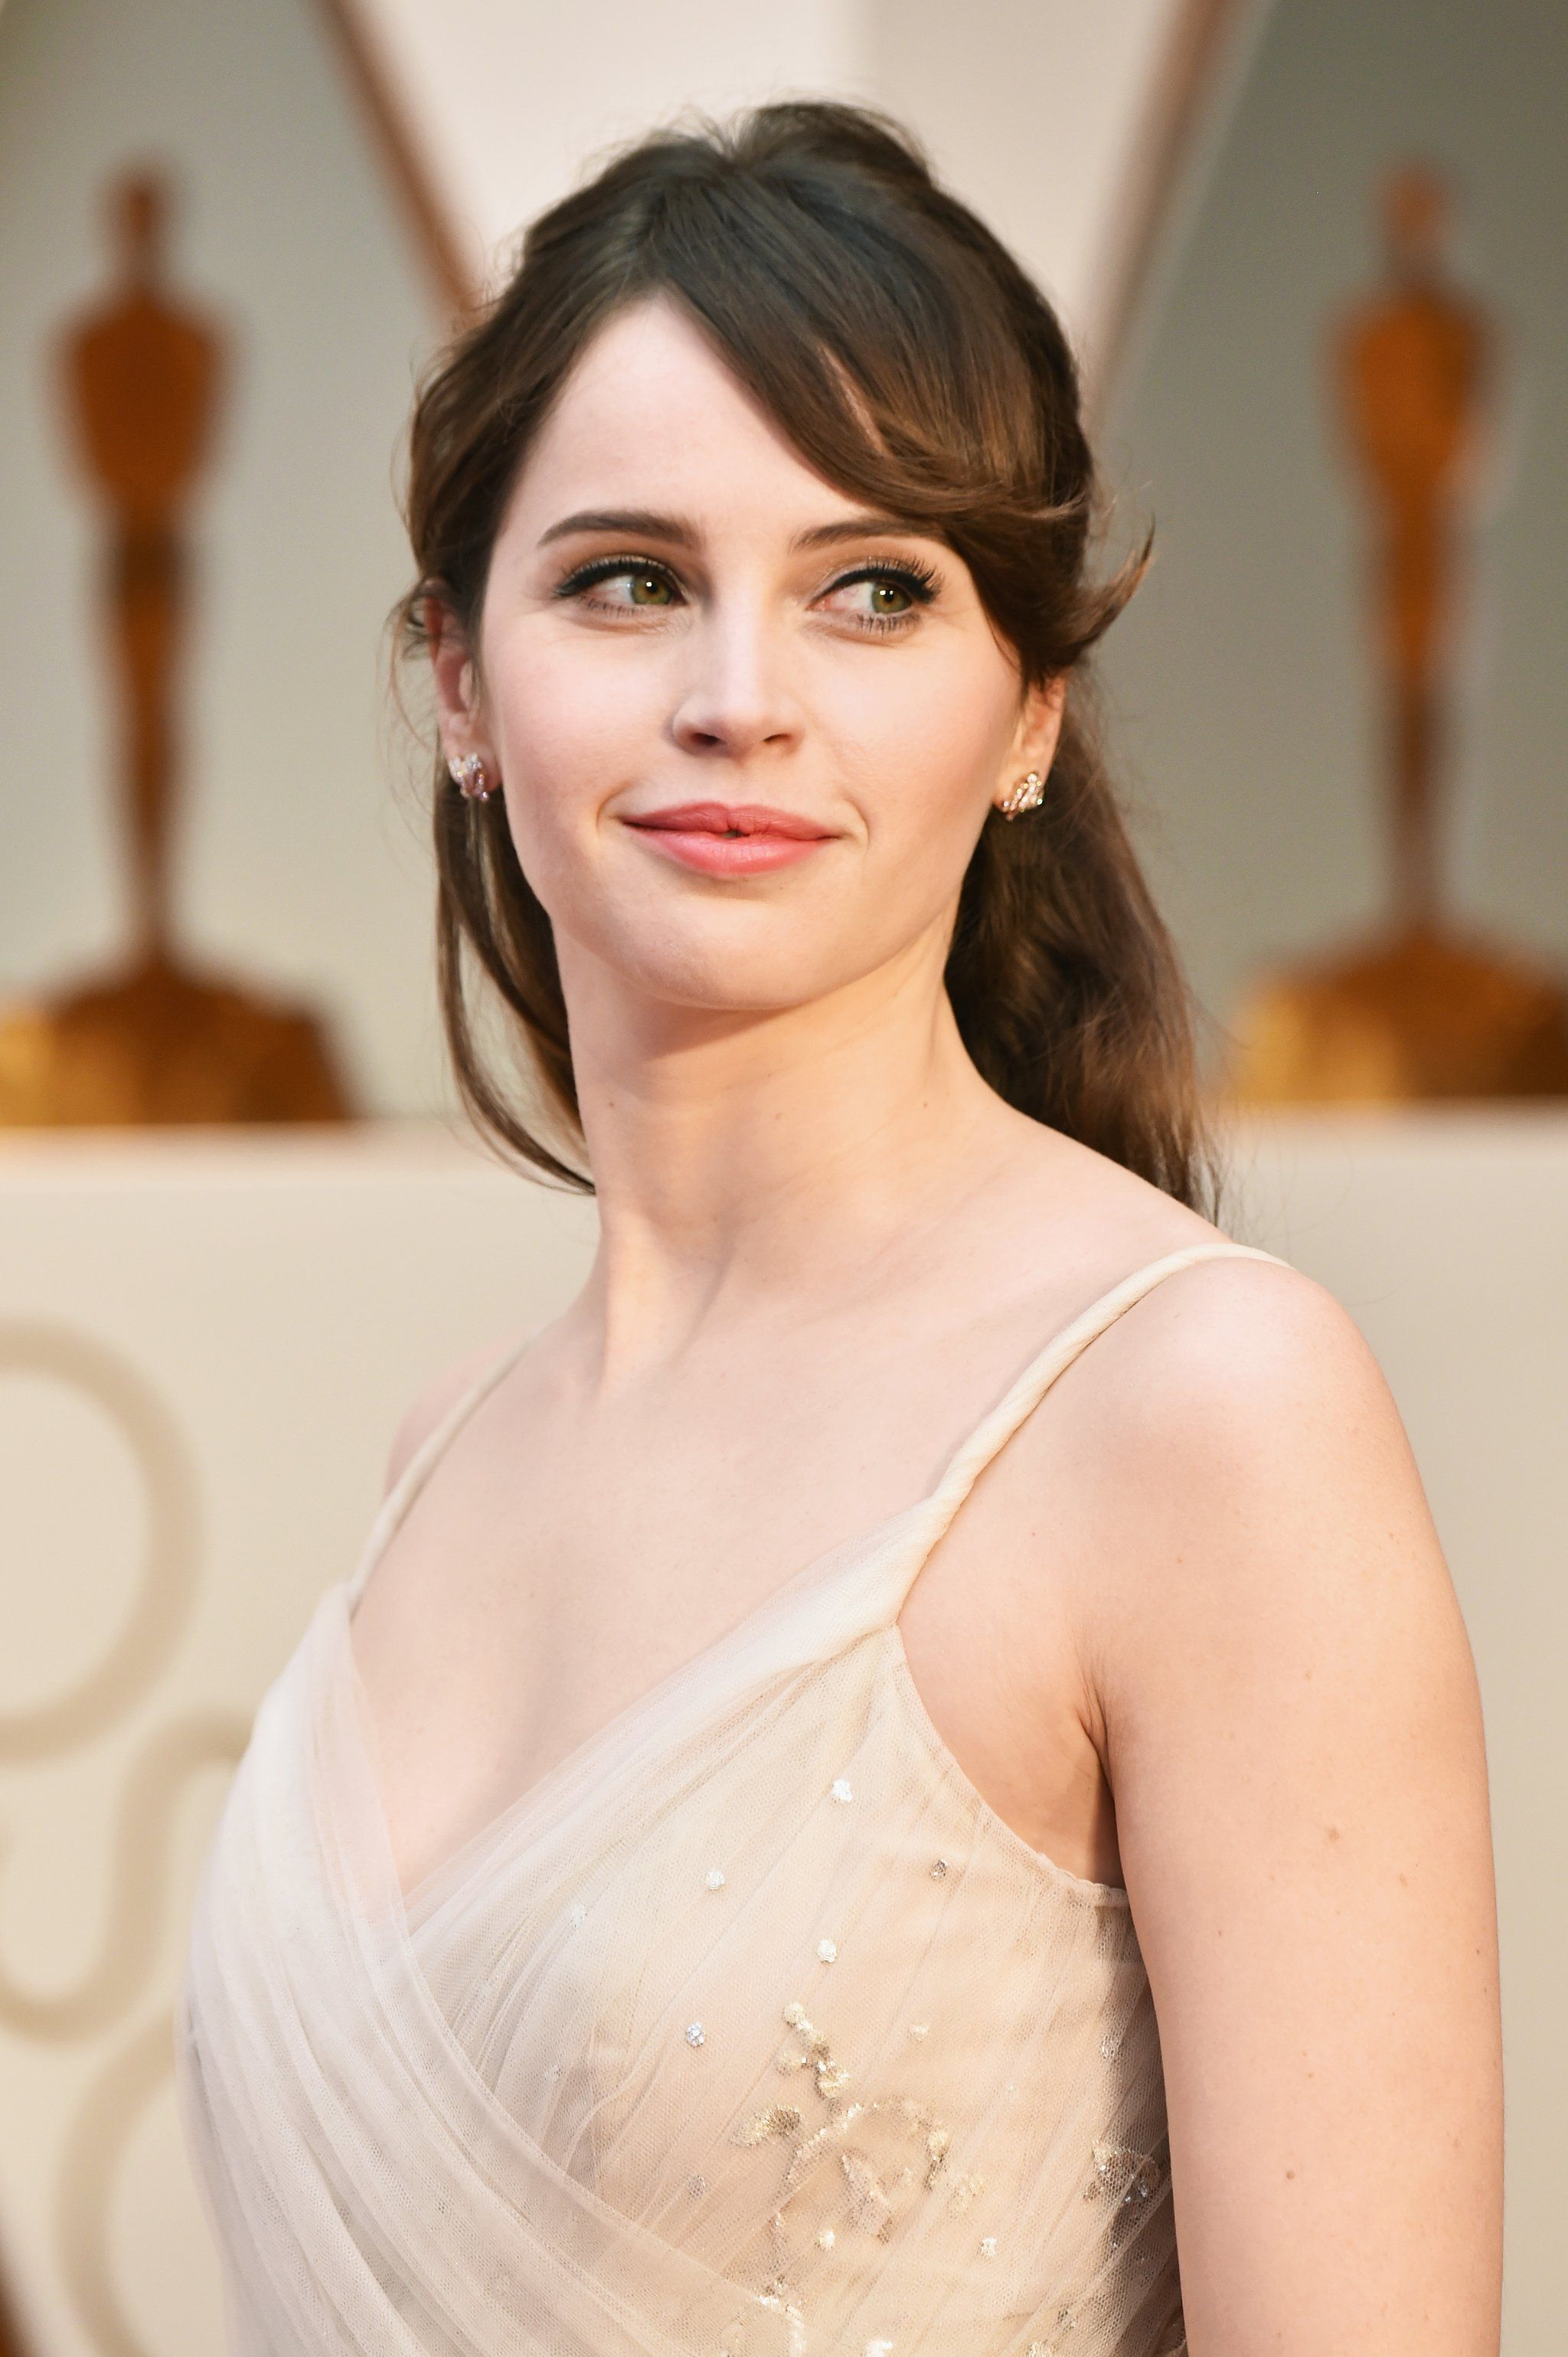 Felicity Jones | Felicity rose hadley jones, Felicity jones, Hair beauty